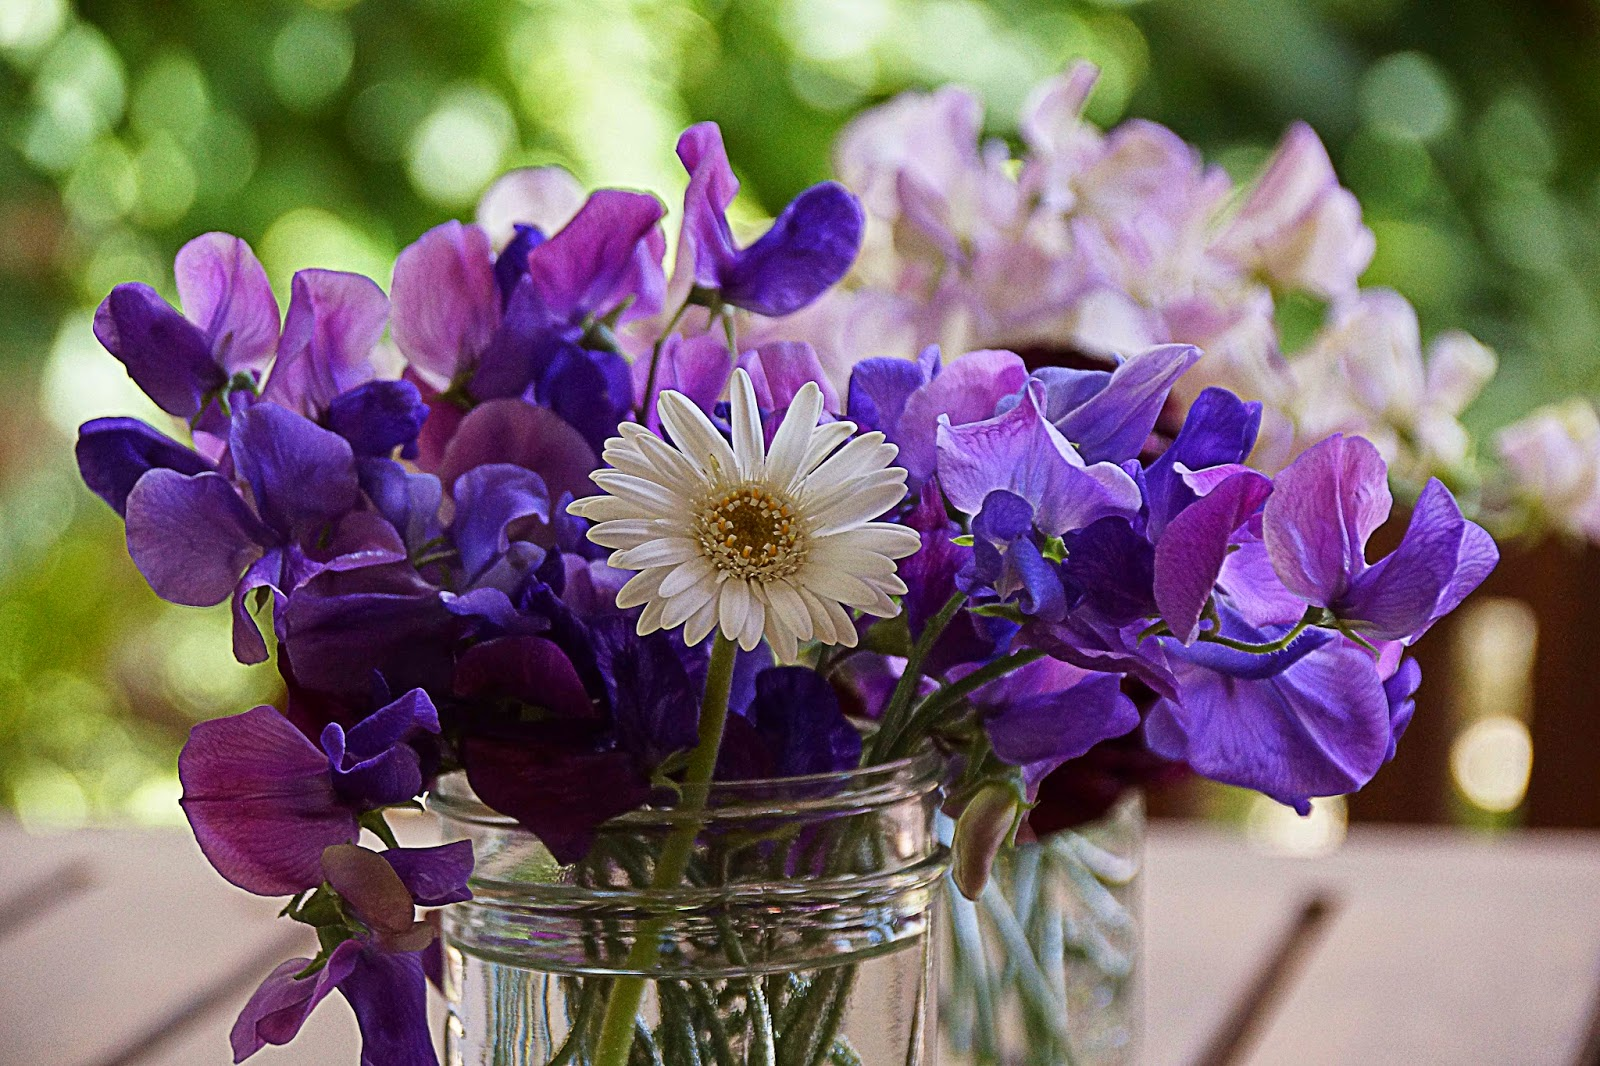 April birth flower daisy and sweet pea avas flowers they can be given as a gift among friends to mean keeping a promise in latin daisy literally means pretty so take your pick which means the most to izmirmasajfo